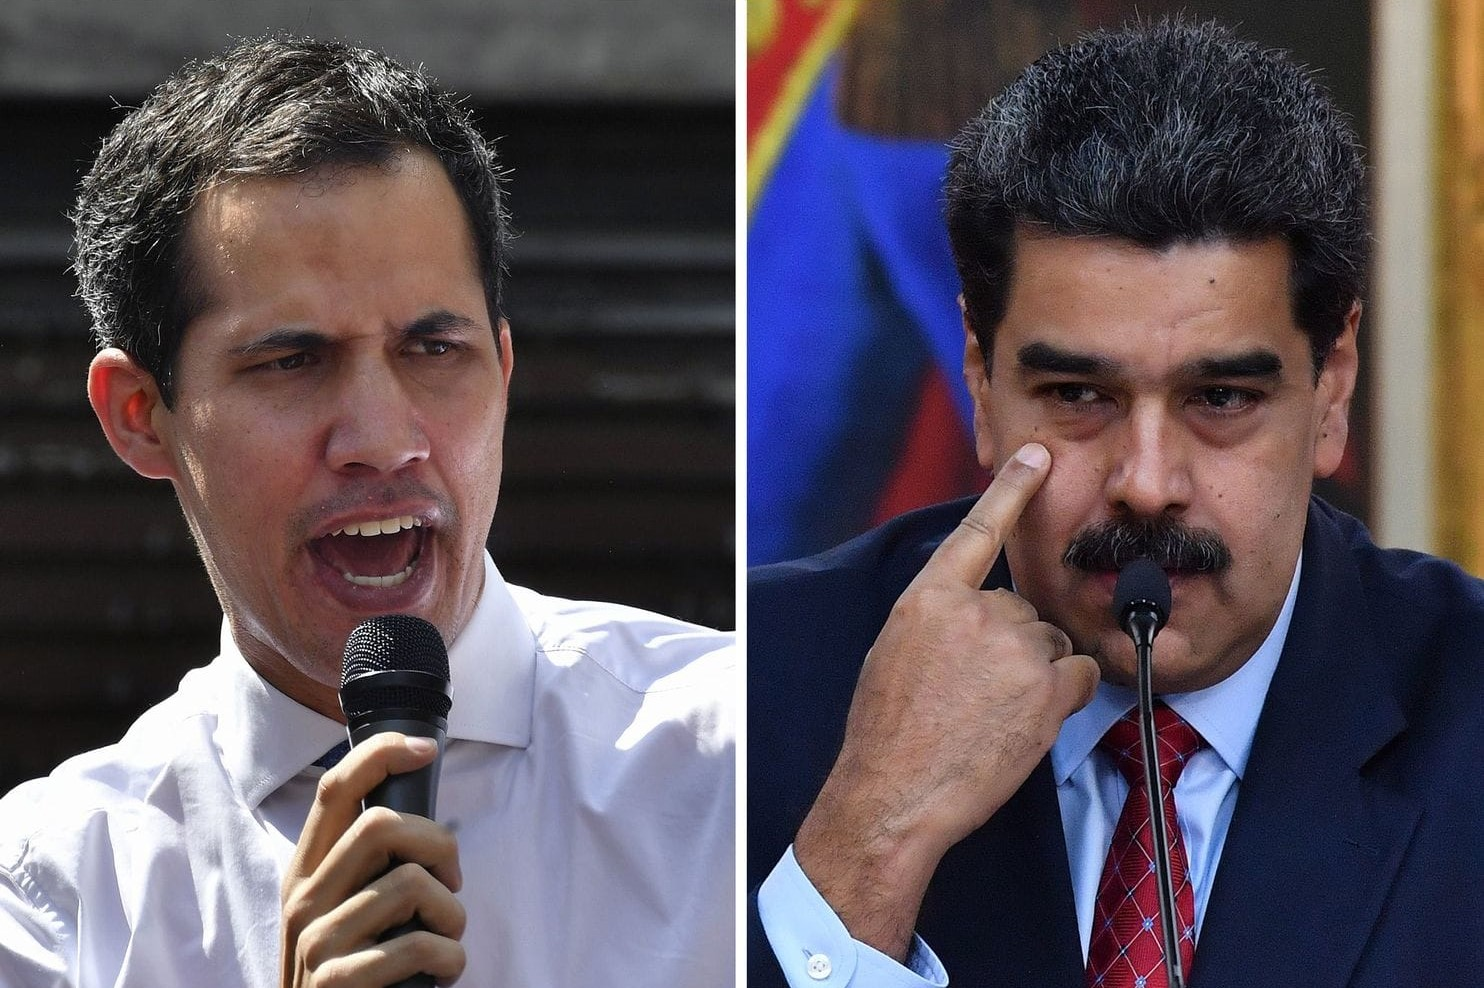 Will there be negotiations between Maduro and the opposition?